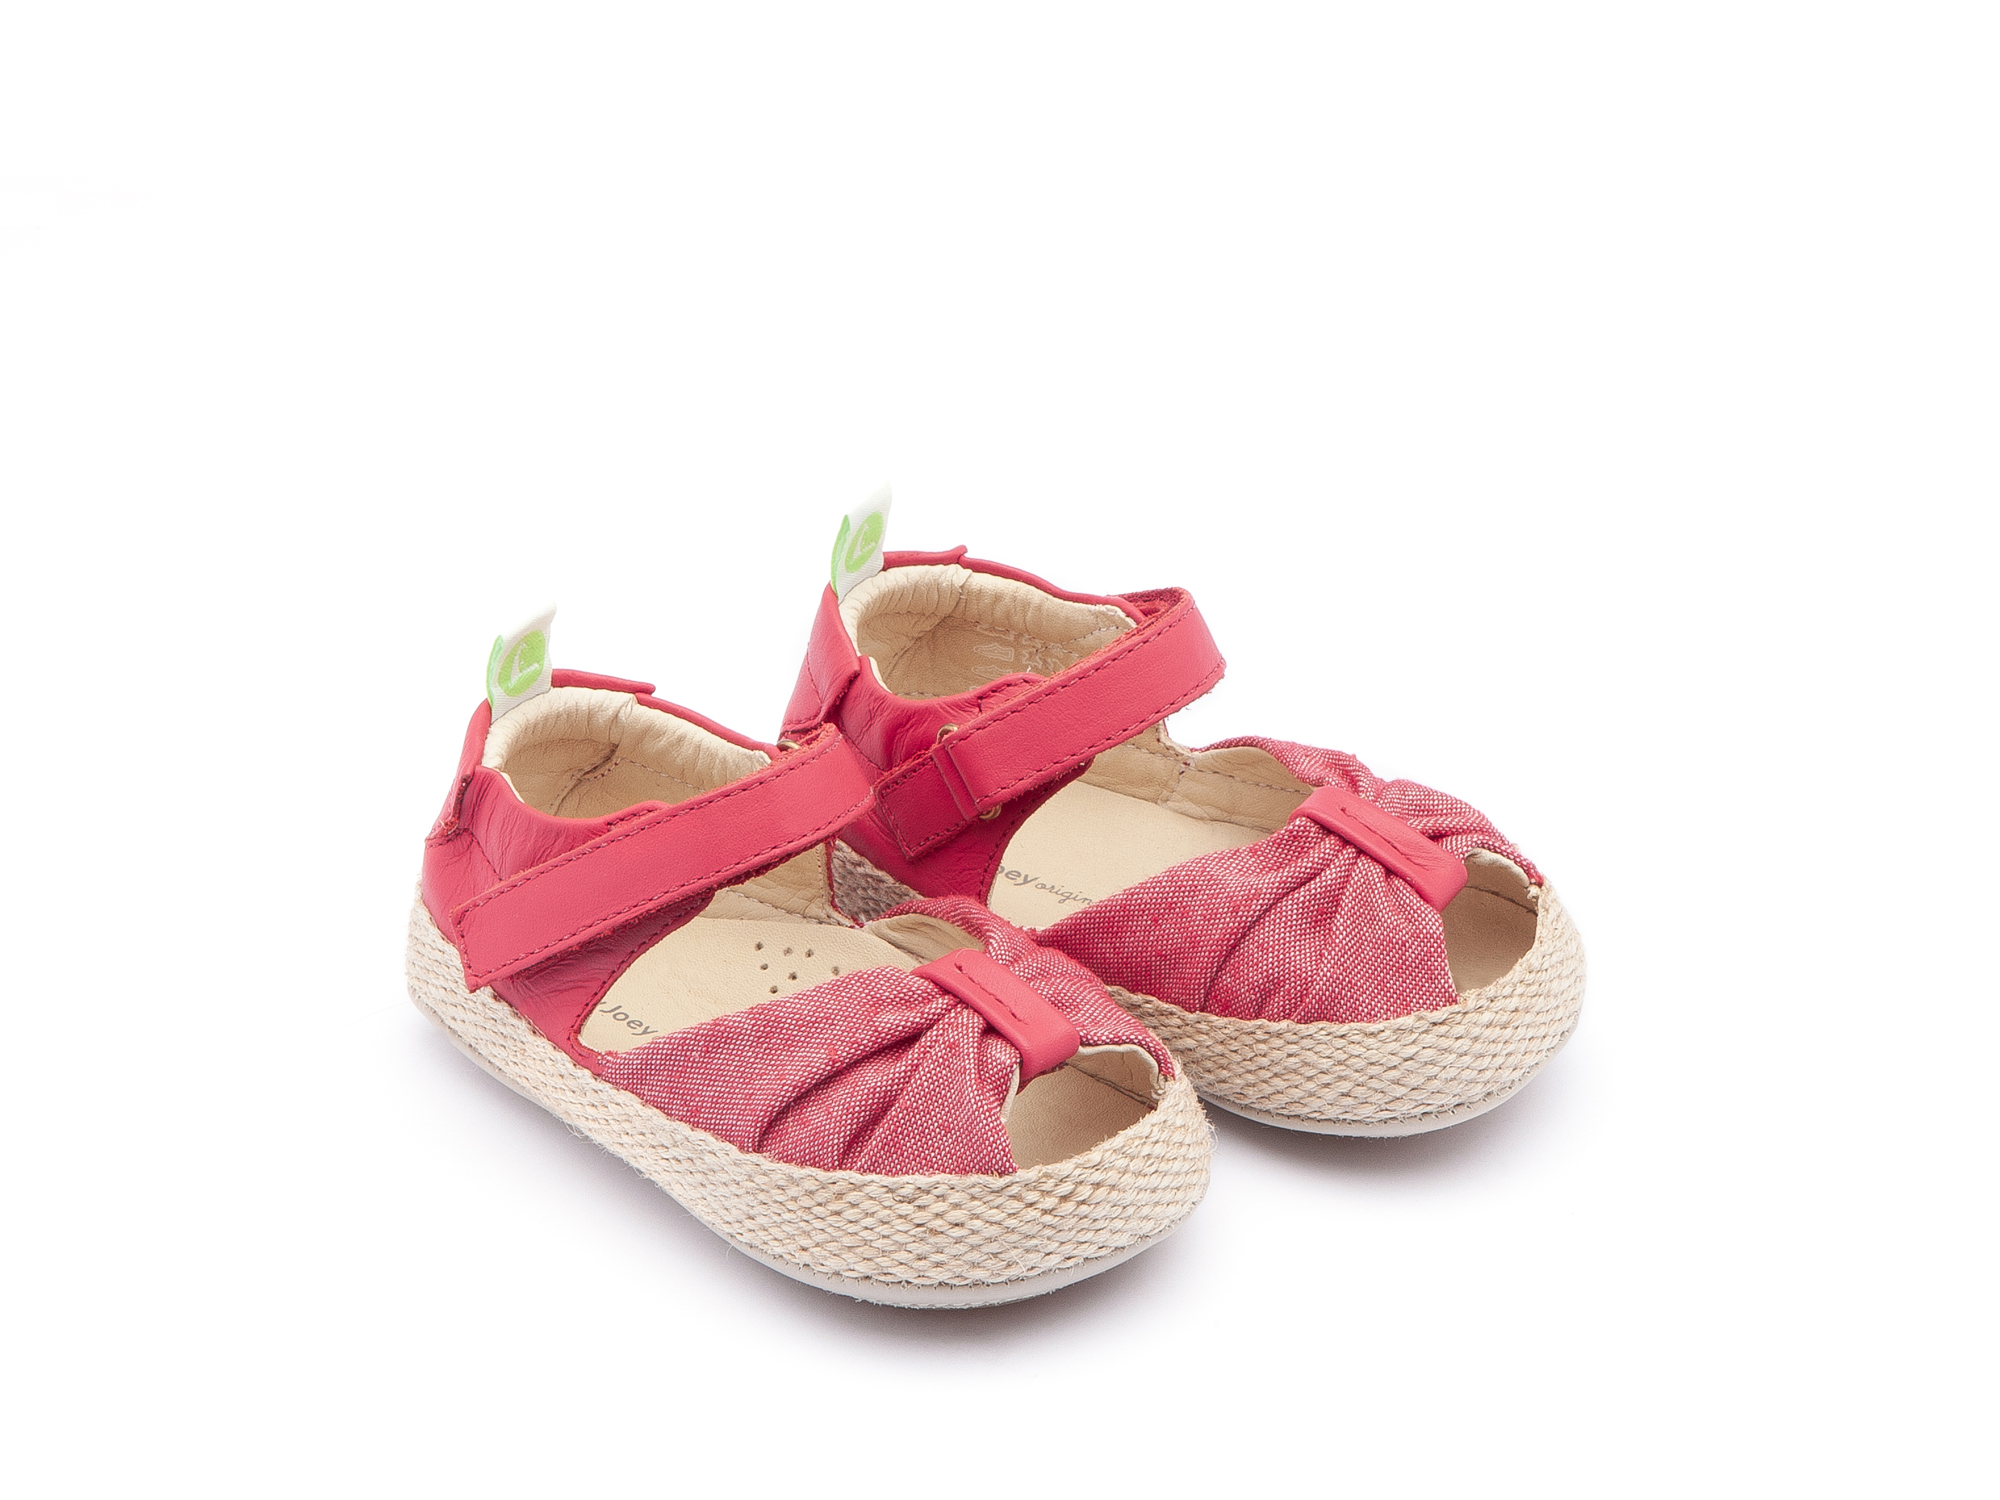 Sandália Coasty Cranberry Canvas/ Cranberry Baby 0 à 2 anos - 0